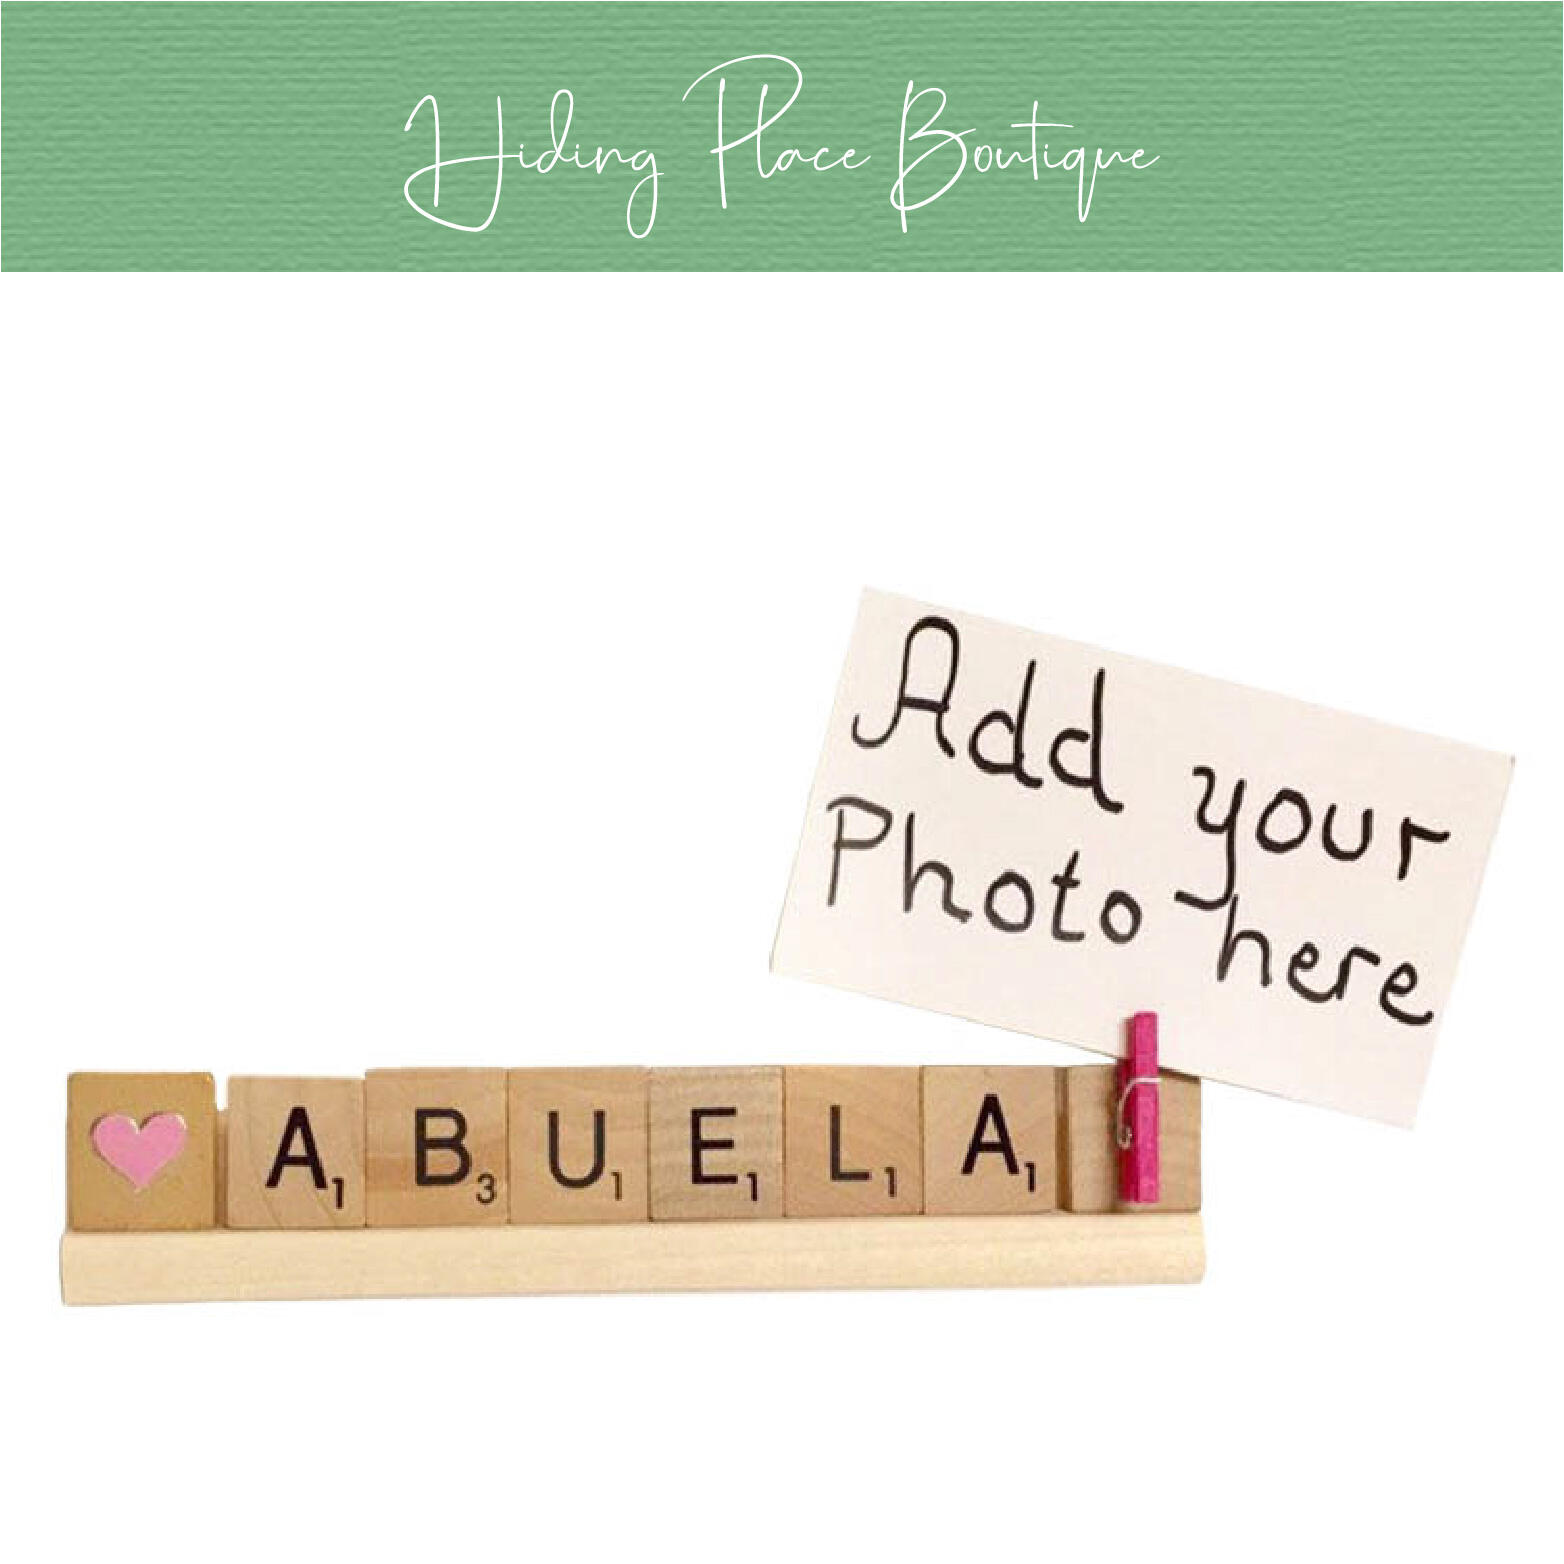 abuela photo frame by hiding place boutique